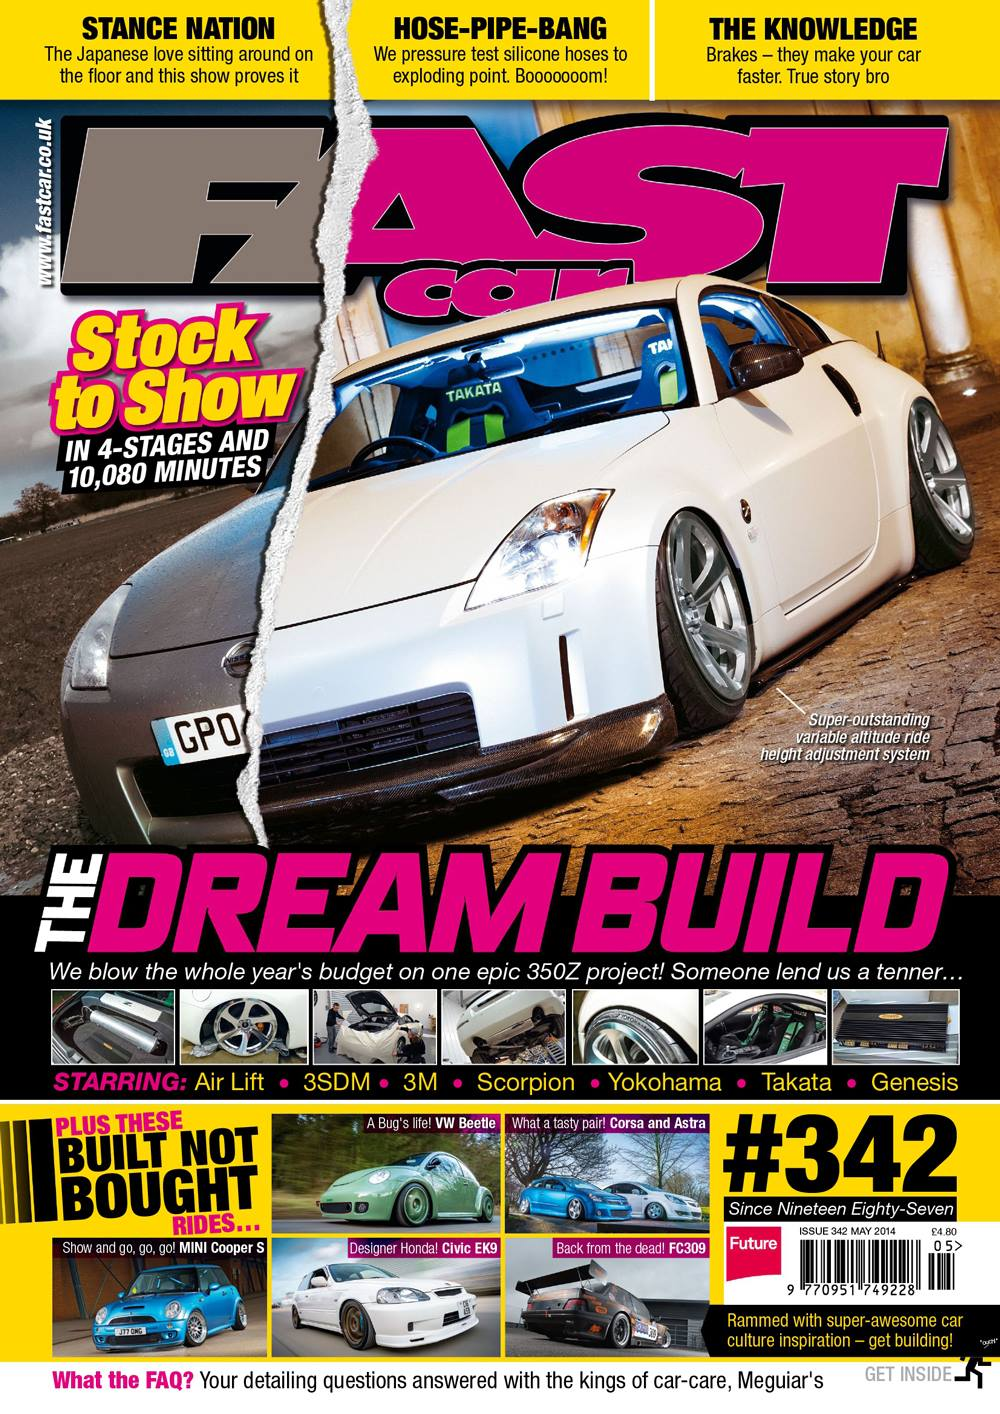 Fast Car Magazine's 350z on Air Lift Performance air suspension